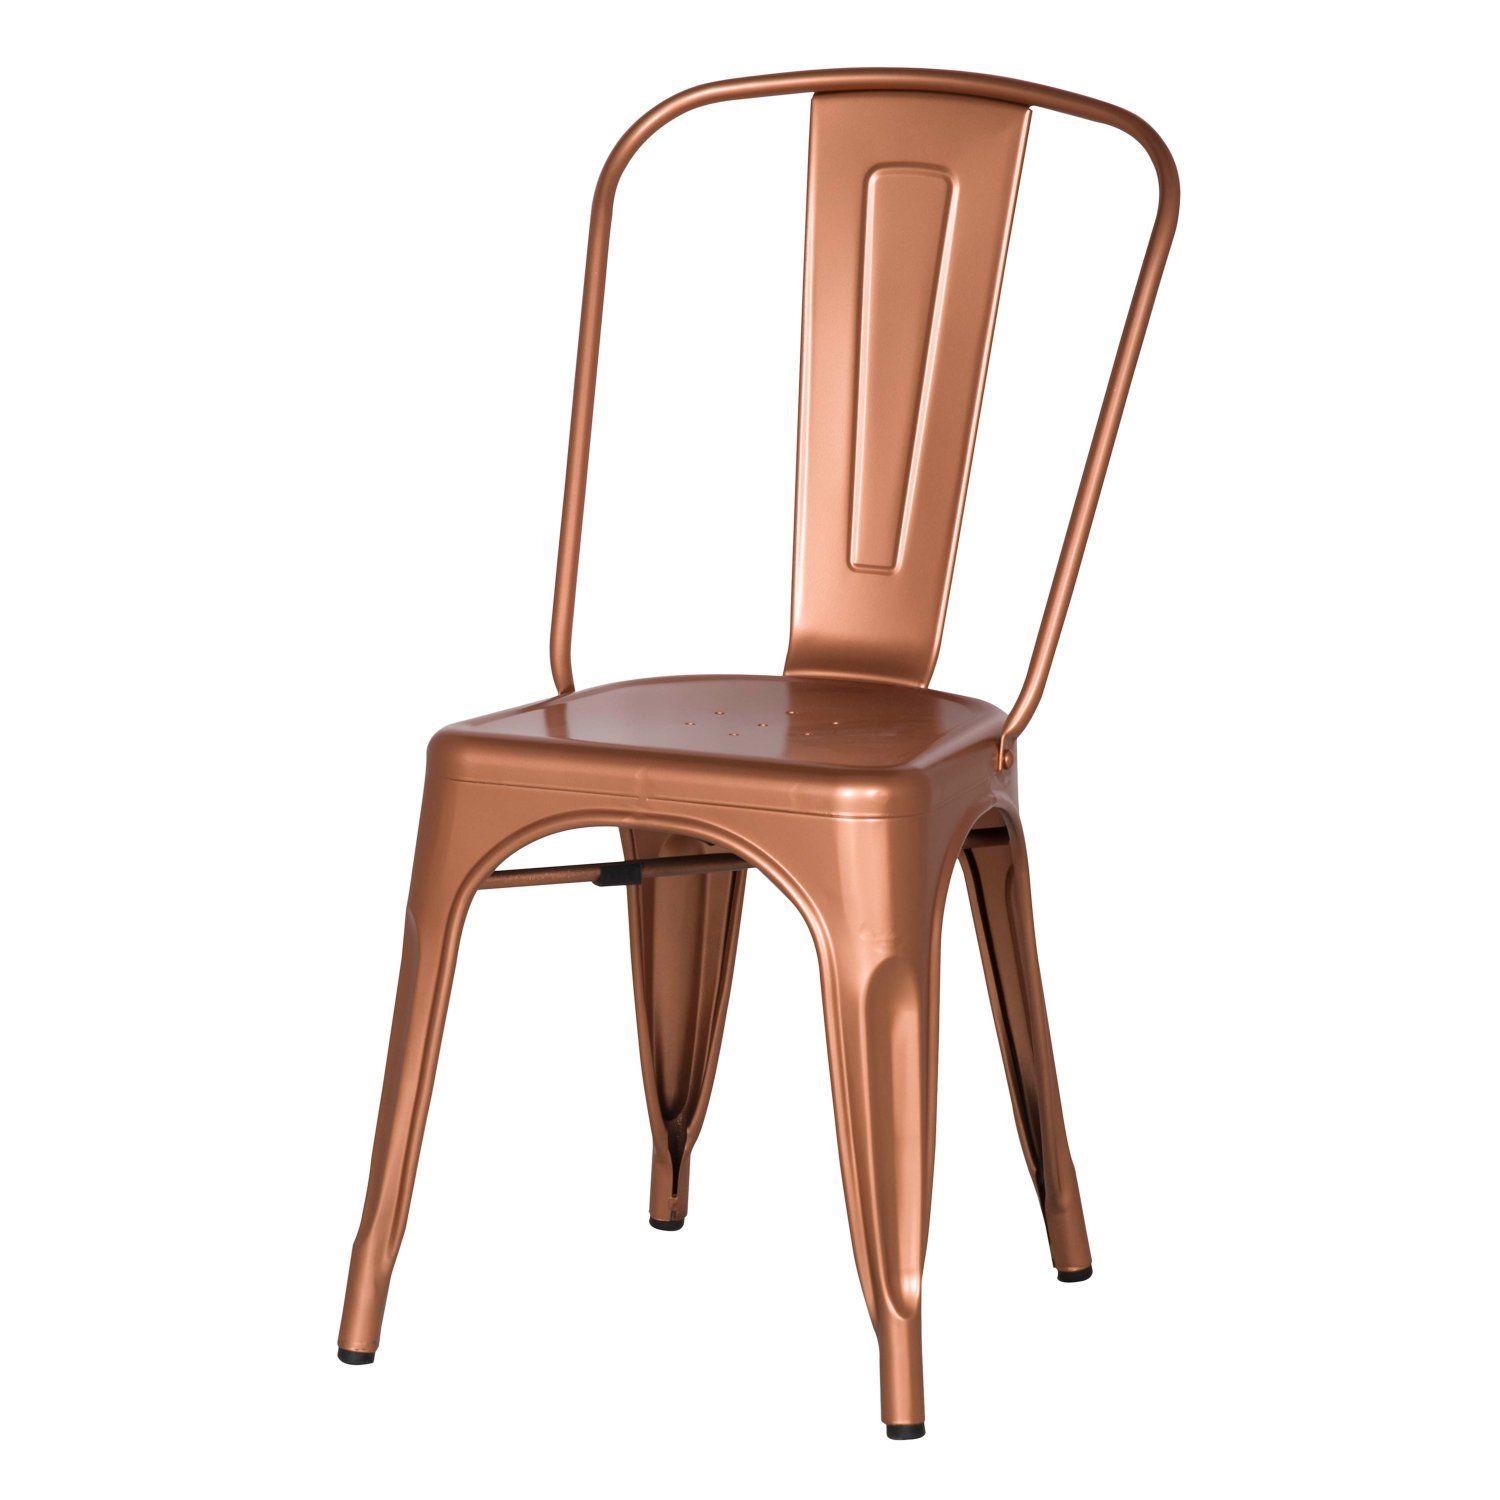 Adeco metal stackable industrial chic dining bistro cafe side chairs - Adeco Metal Stackable Industrial Chic Dining Bistro Cafe Side Chairs Copper Set Of 2